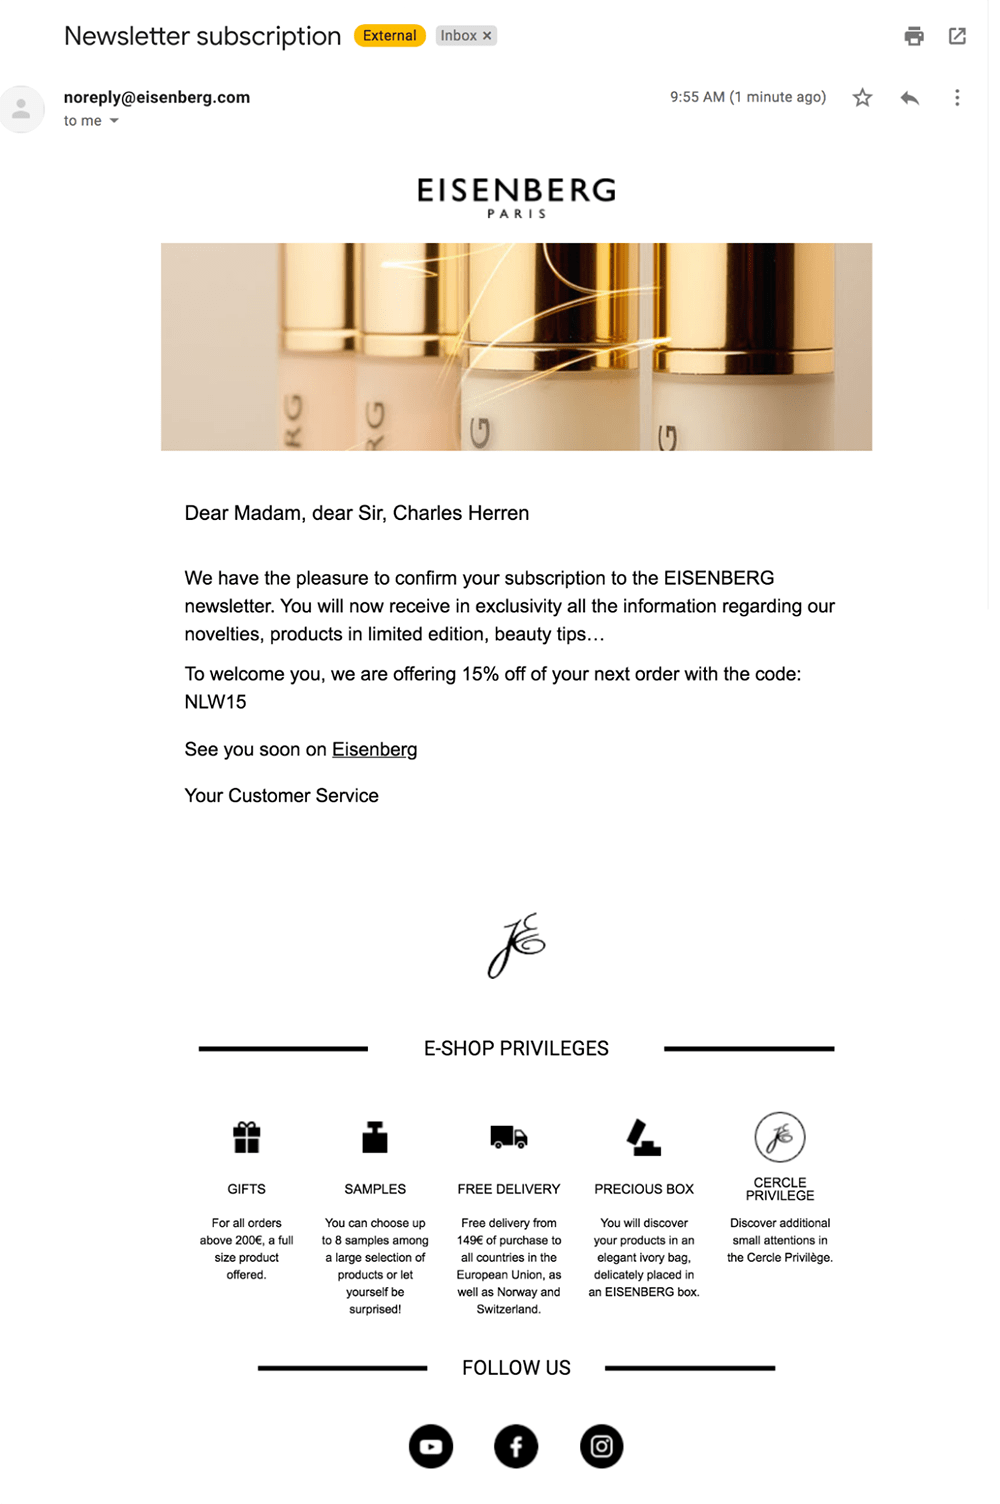 Eisenberg welcome email